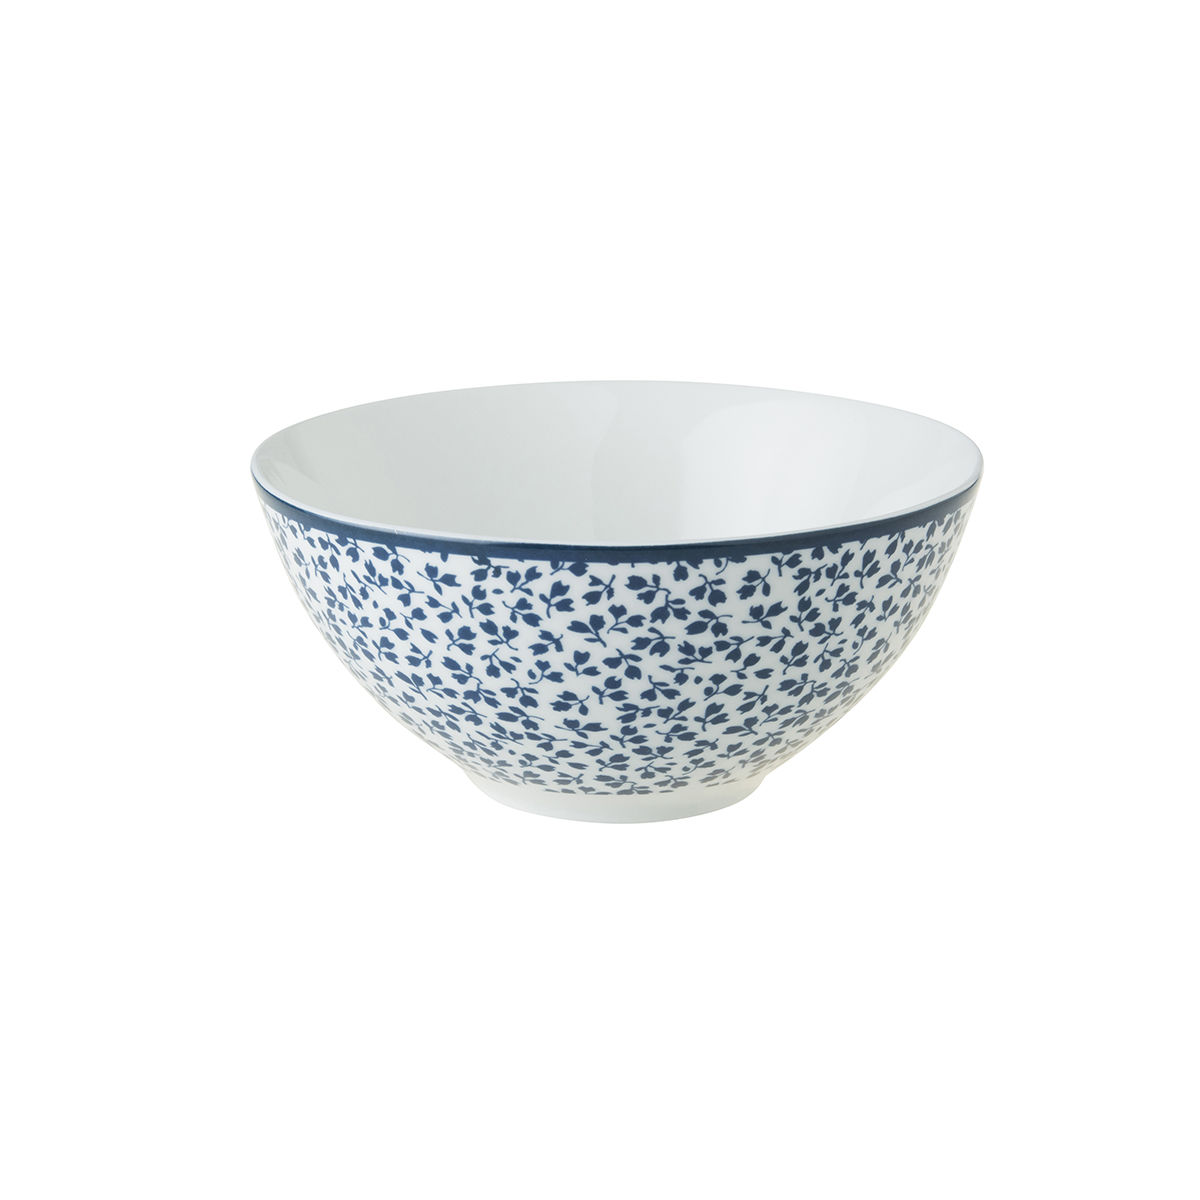 "Laura Ashley 5"" Bowl Floris - product images  of"